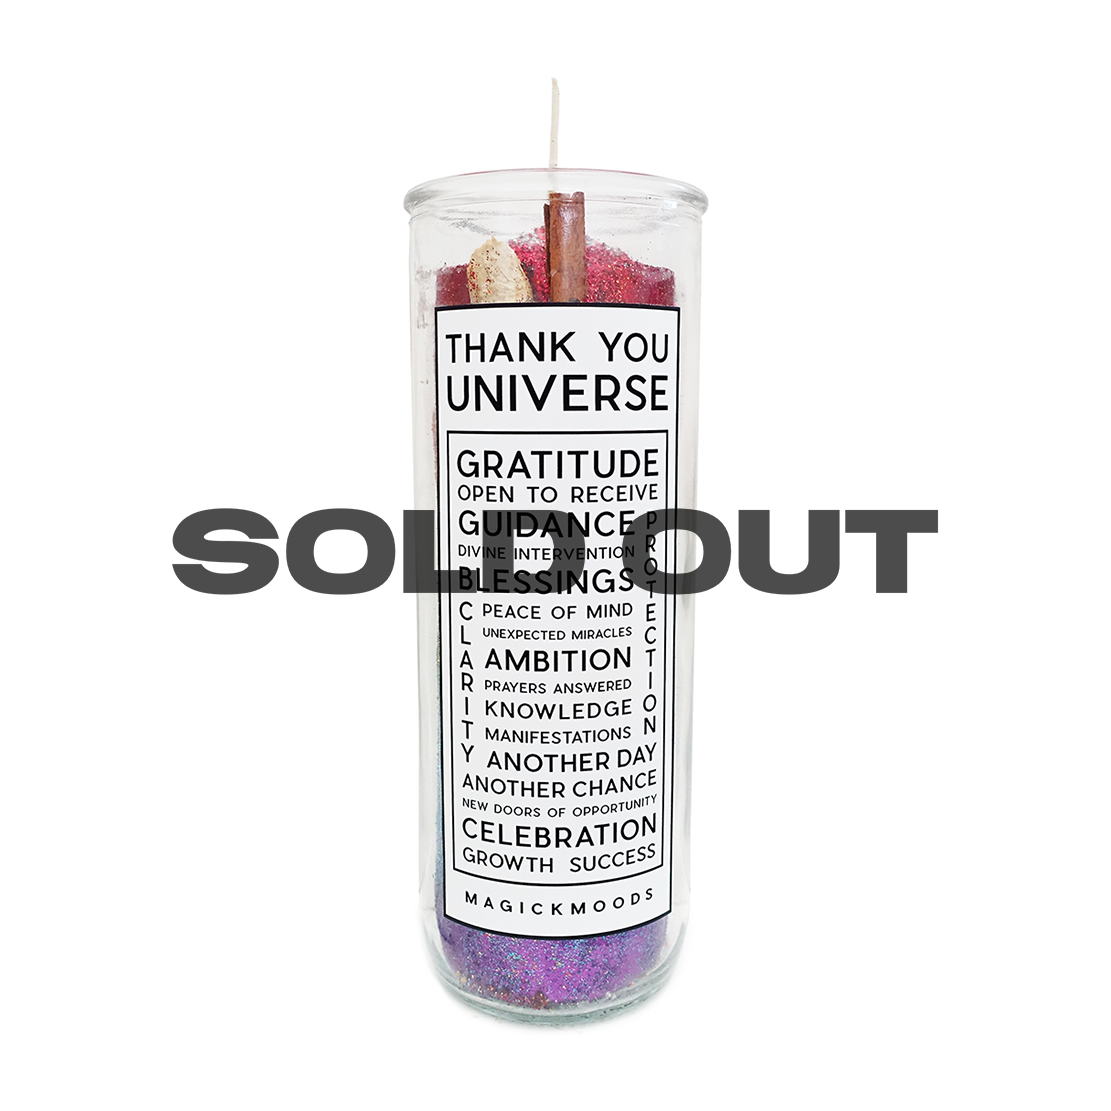 Thank You Universe 7-Day Meditation Candle - PREORDER - Ships by 8/14